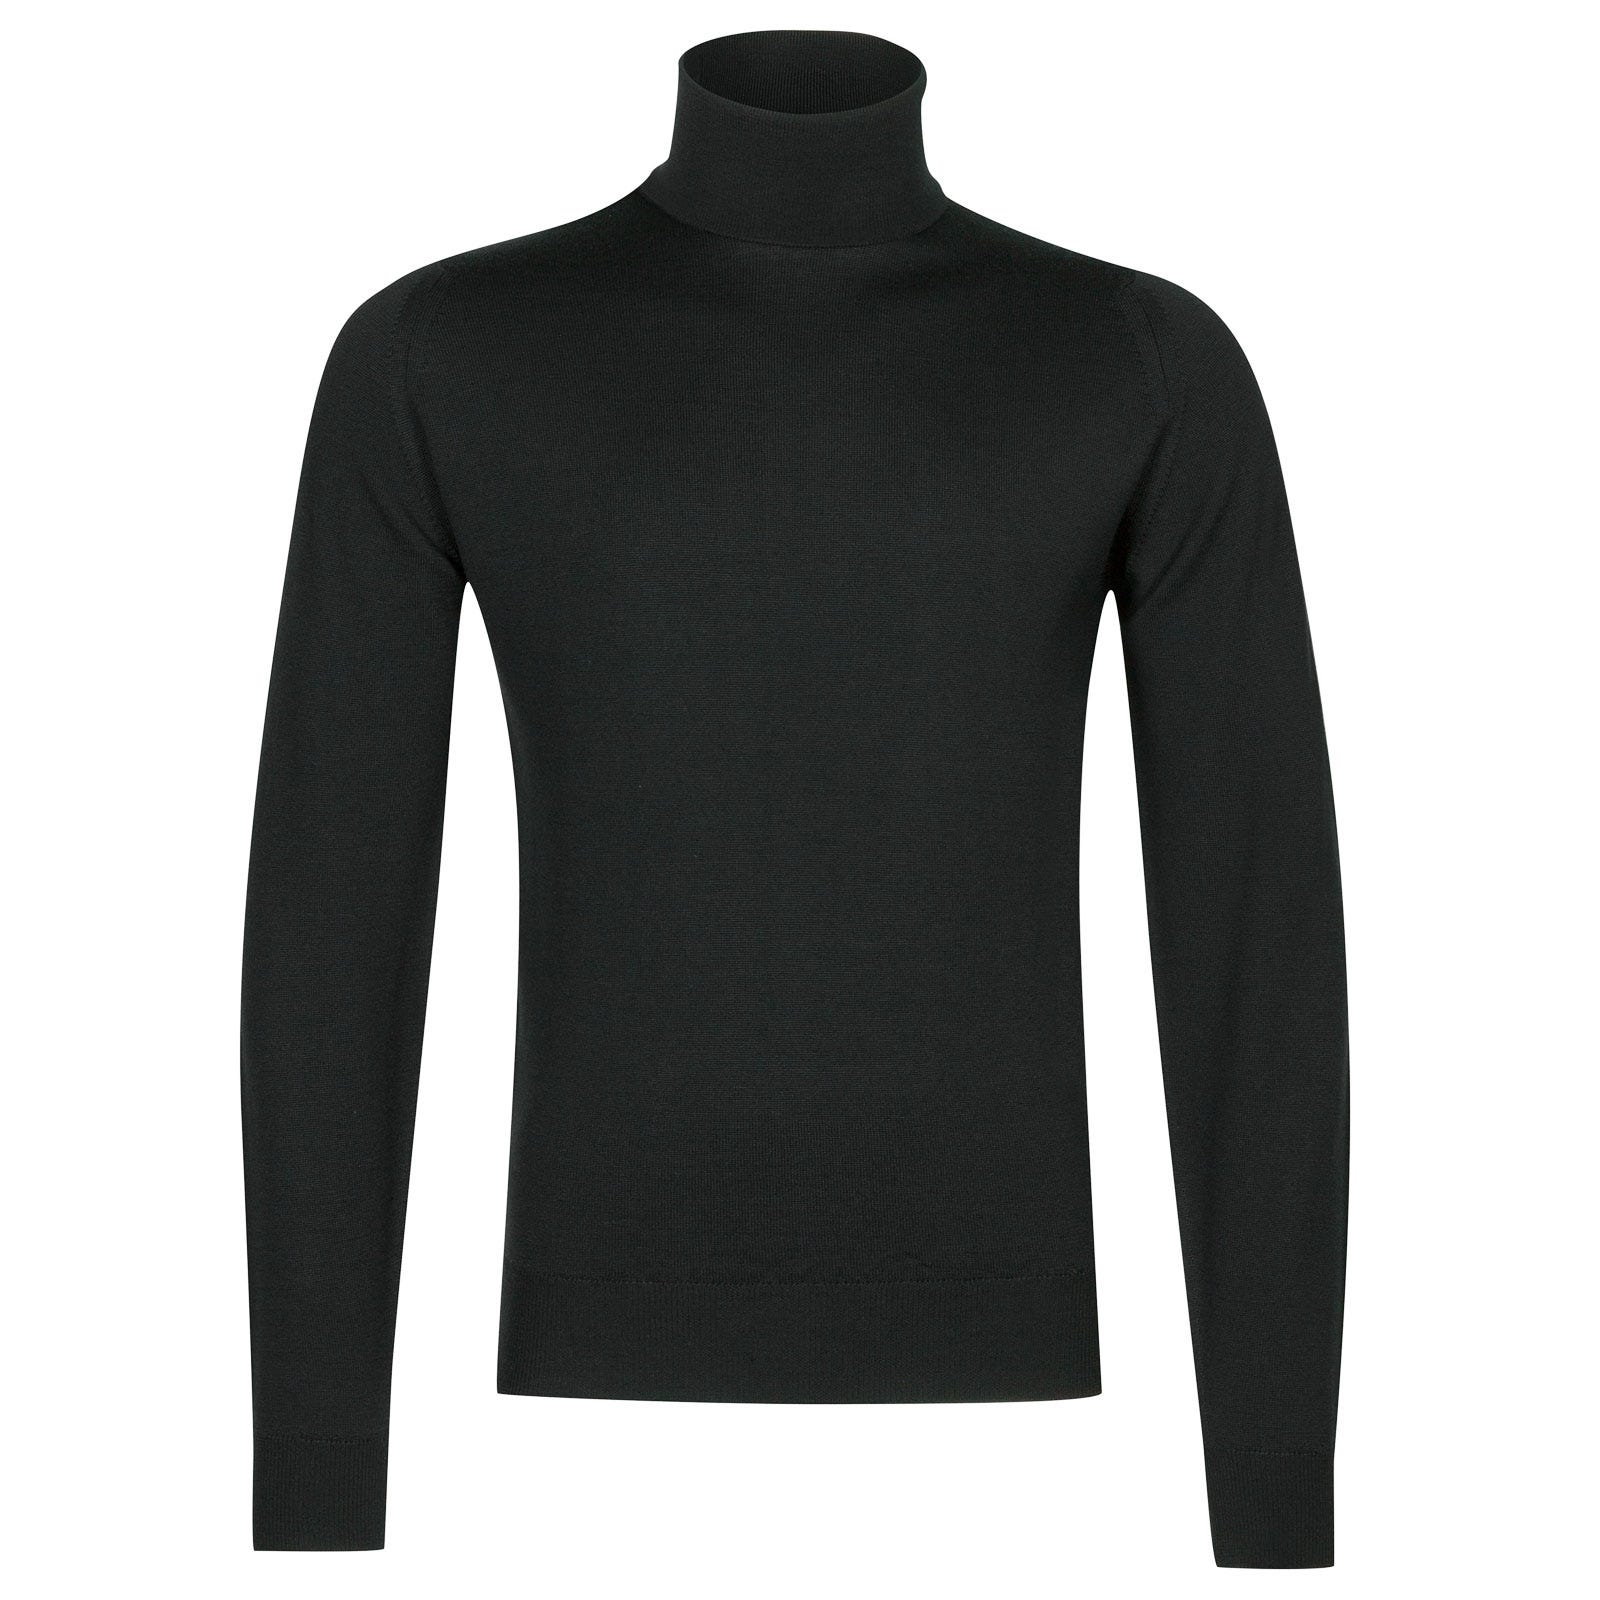 John Smedley Connell Merino Wool Pullover in Racing Green-S